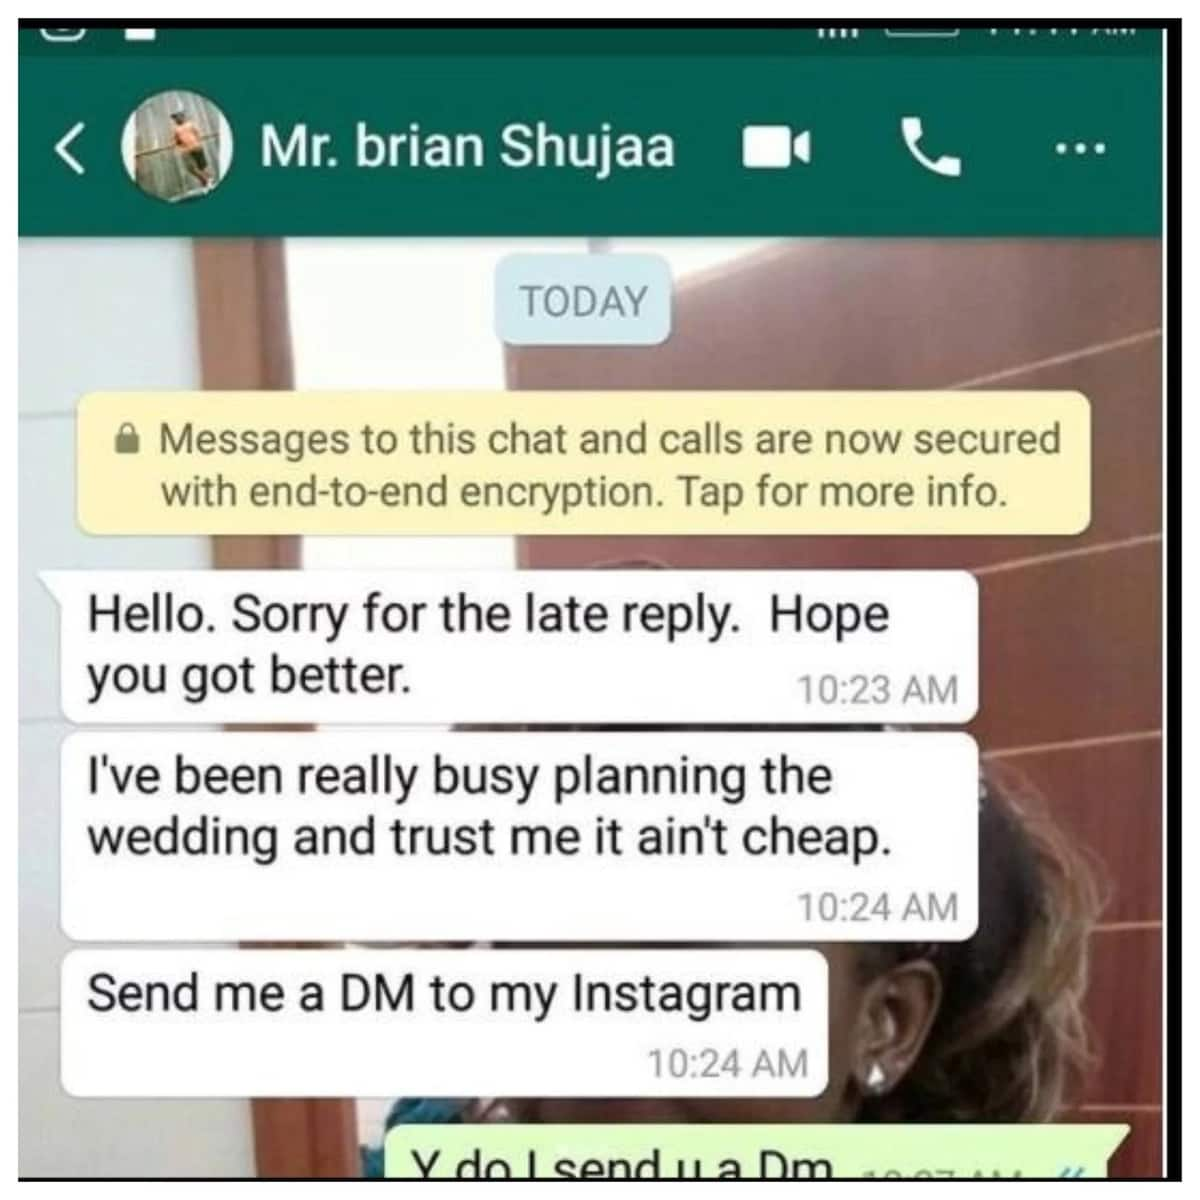 Riser Faith's fiance caught cheating months after paying KSh 2 million dowry